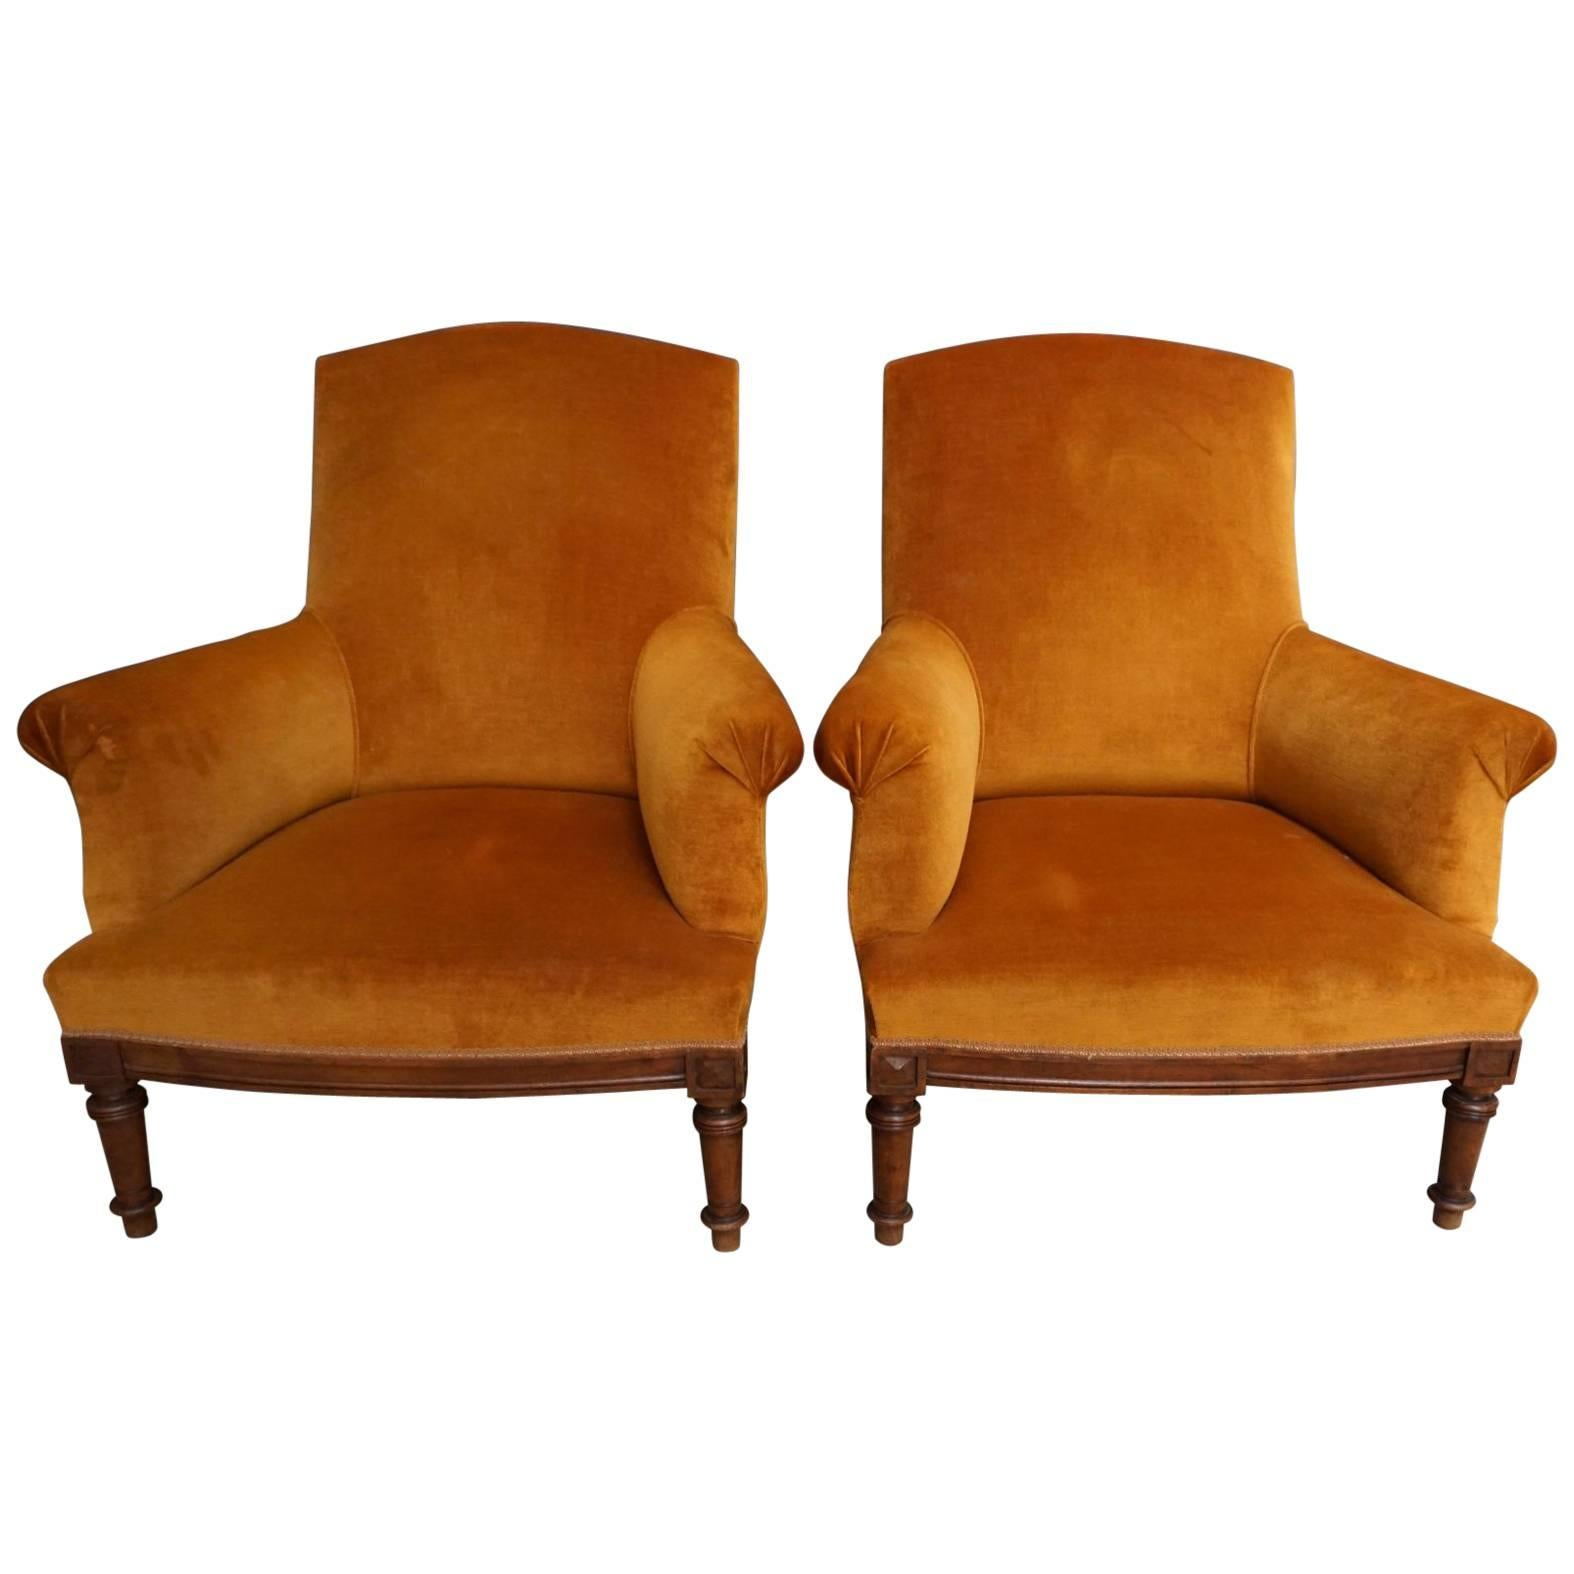 french velvet chair lift chairs for the elderly pair of orange lounge walnut frame 1920 1930s sale